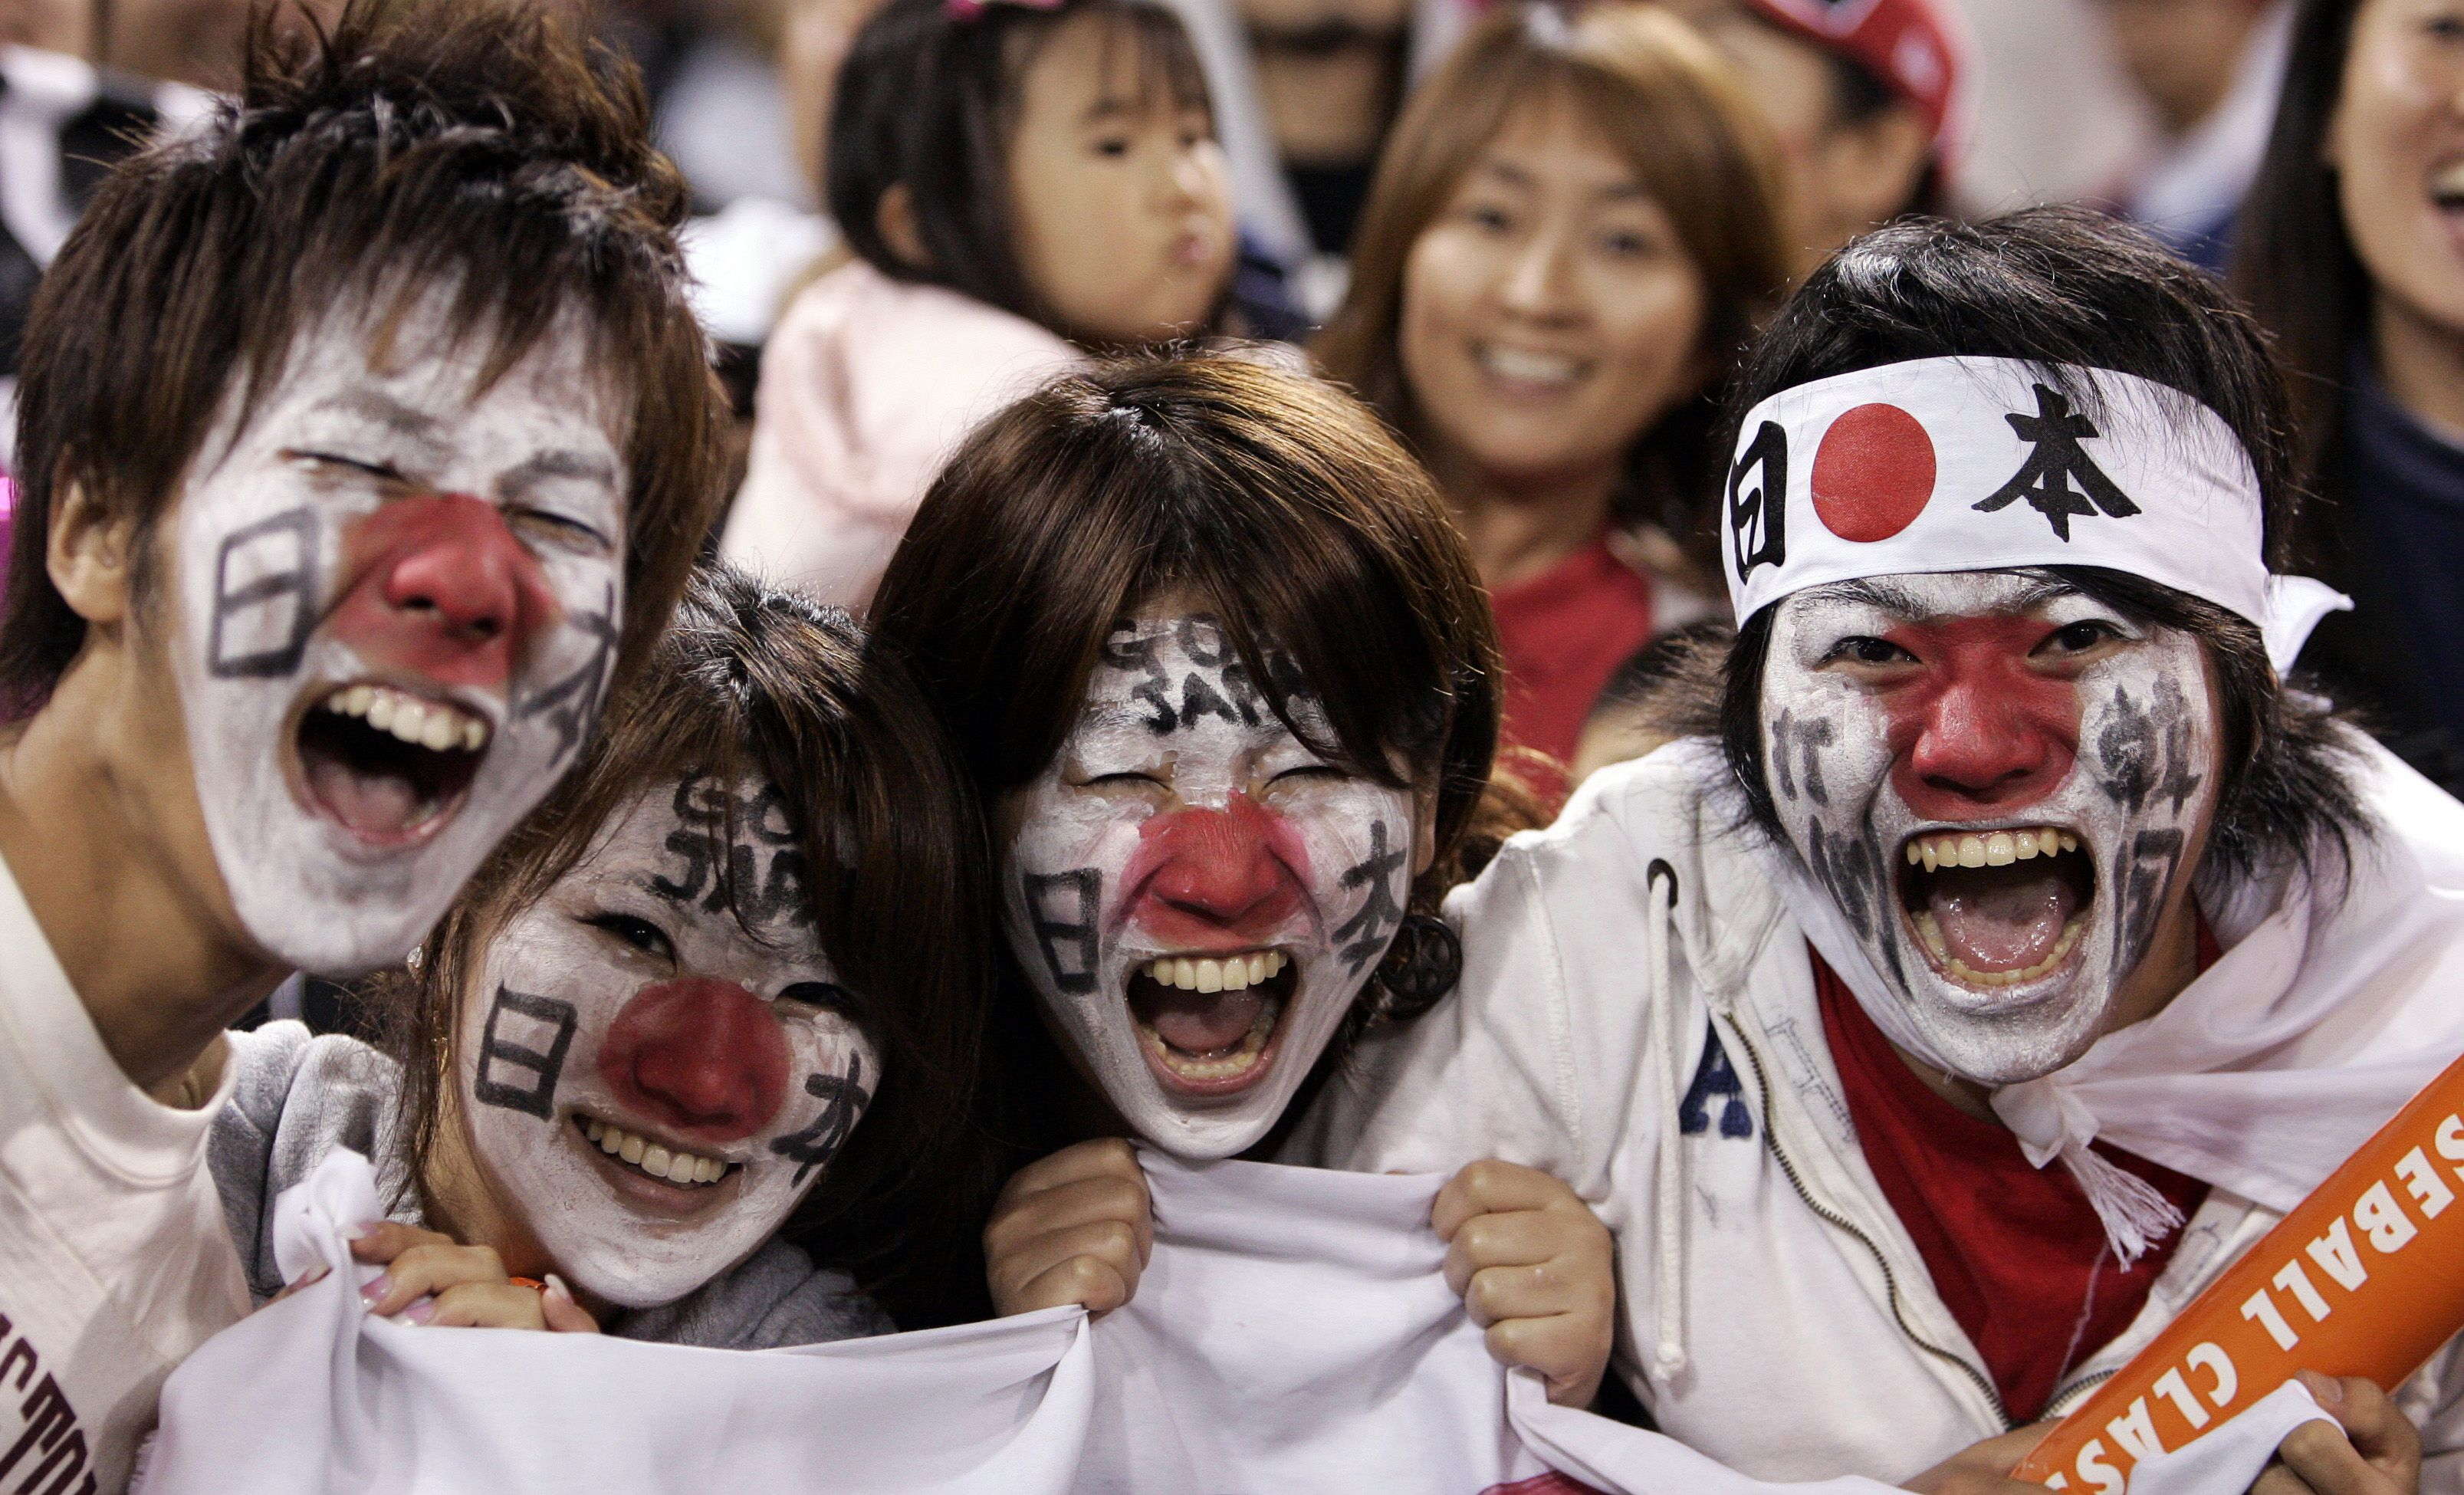 japanese world baseball classic fans - things you should know about the world baseball classic